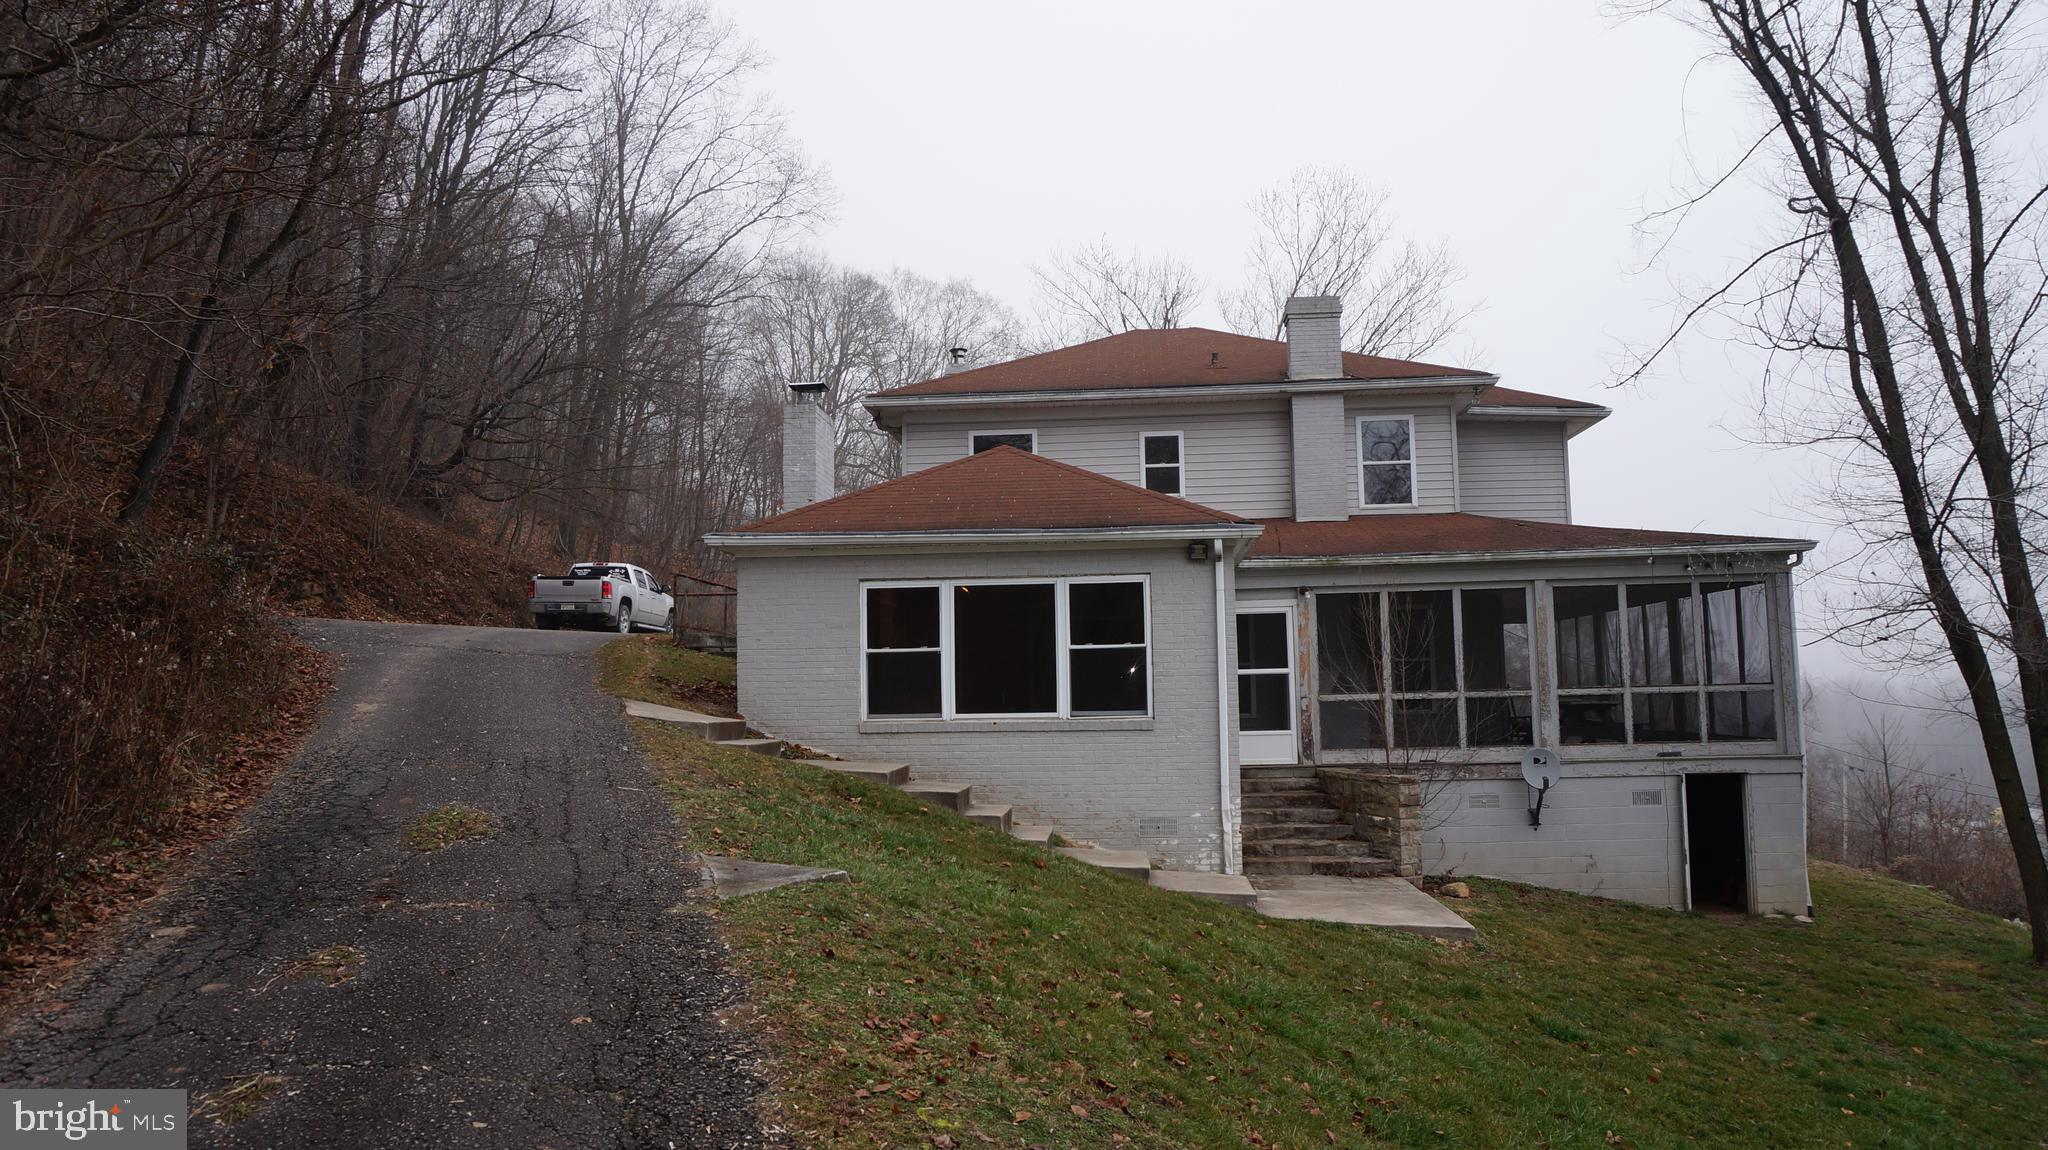 479 Wilkes St Berkeley Springs, WV